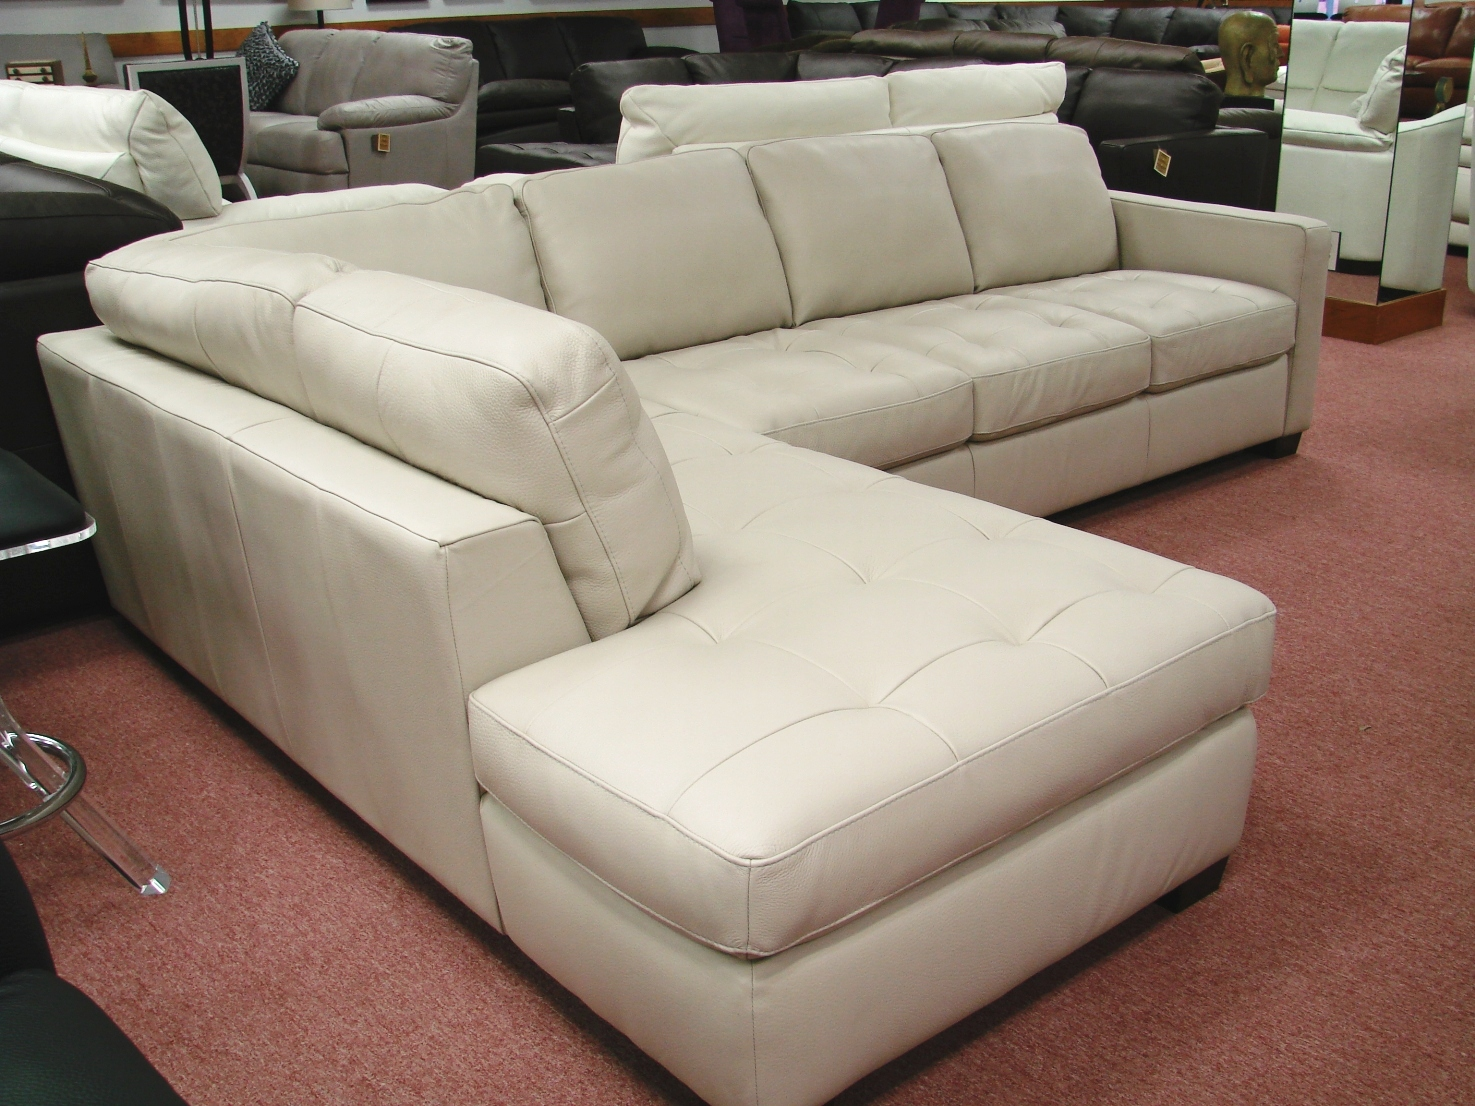 Natuzzi editions by interior concepts furniture blog for Sofa couch for sale